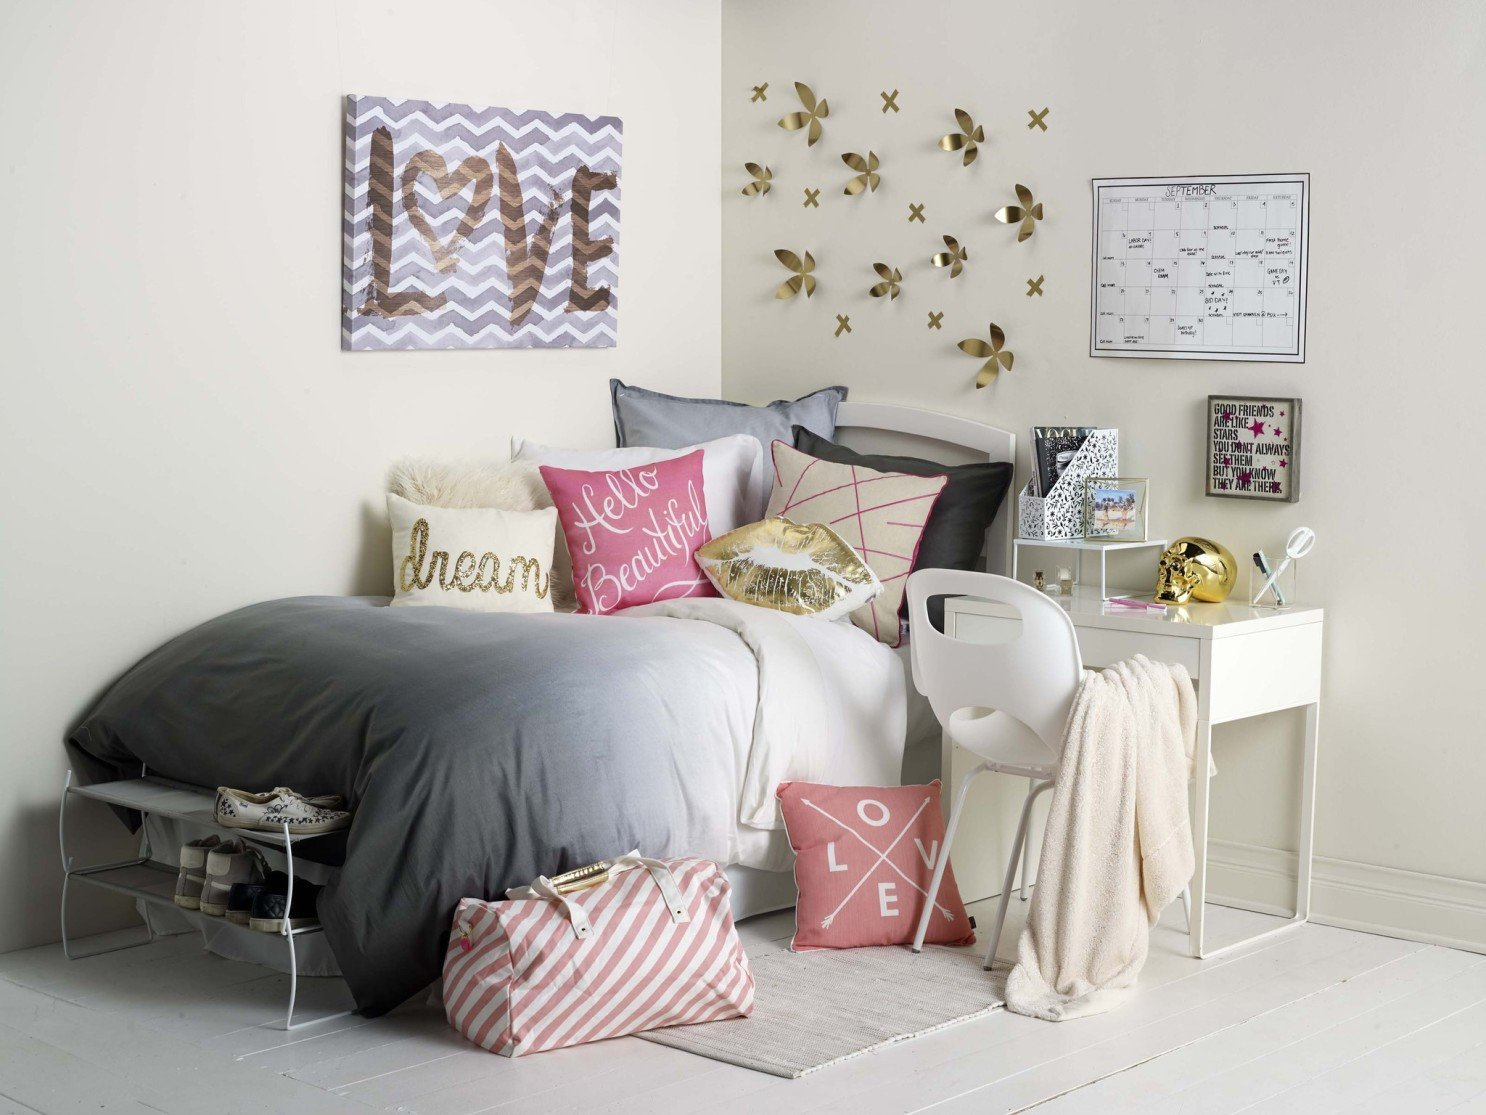 Pink and Grey Bedroom Beautiful Dorm Room Design Goes A Few Degrees Beyond the Milk Crate